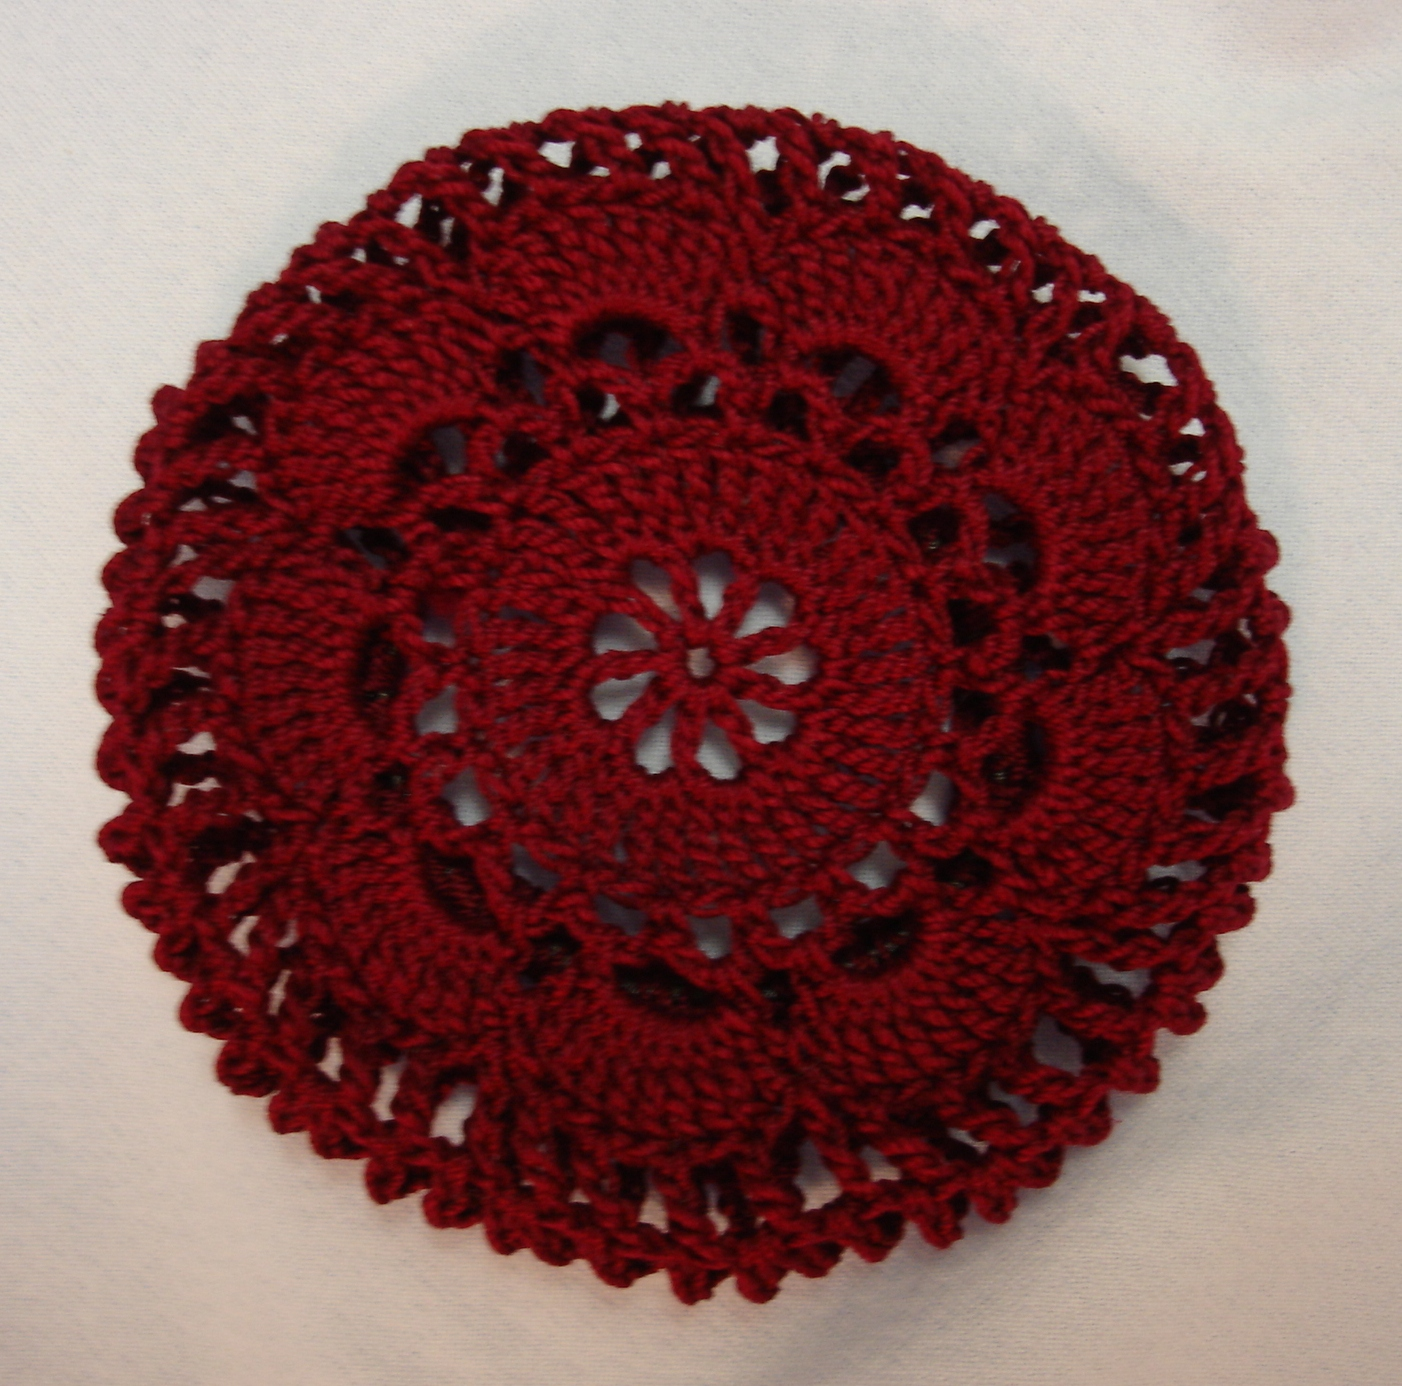 Crochet Hair Net : Burgundy Crocheted Hair Net Bun Cover Amish Mennonite merrydeals4u